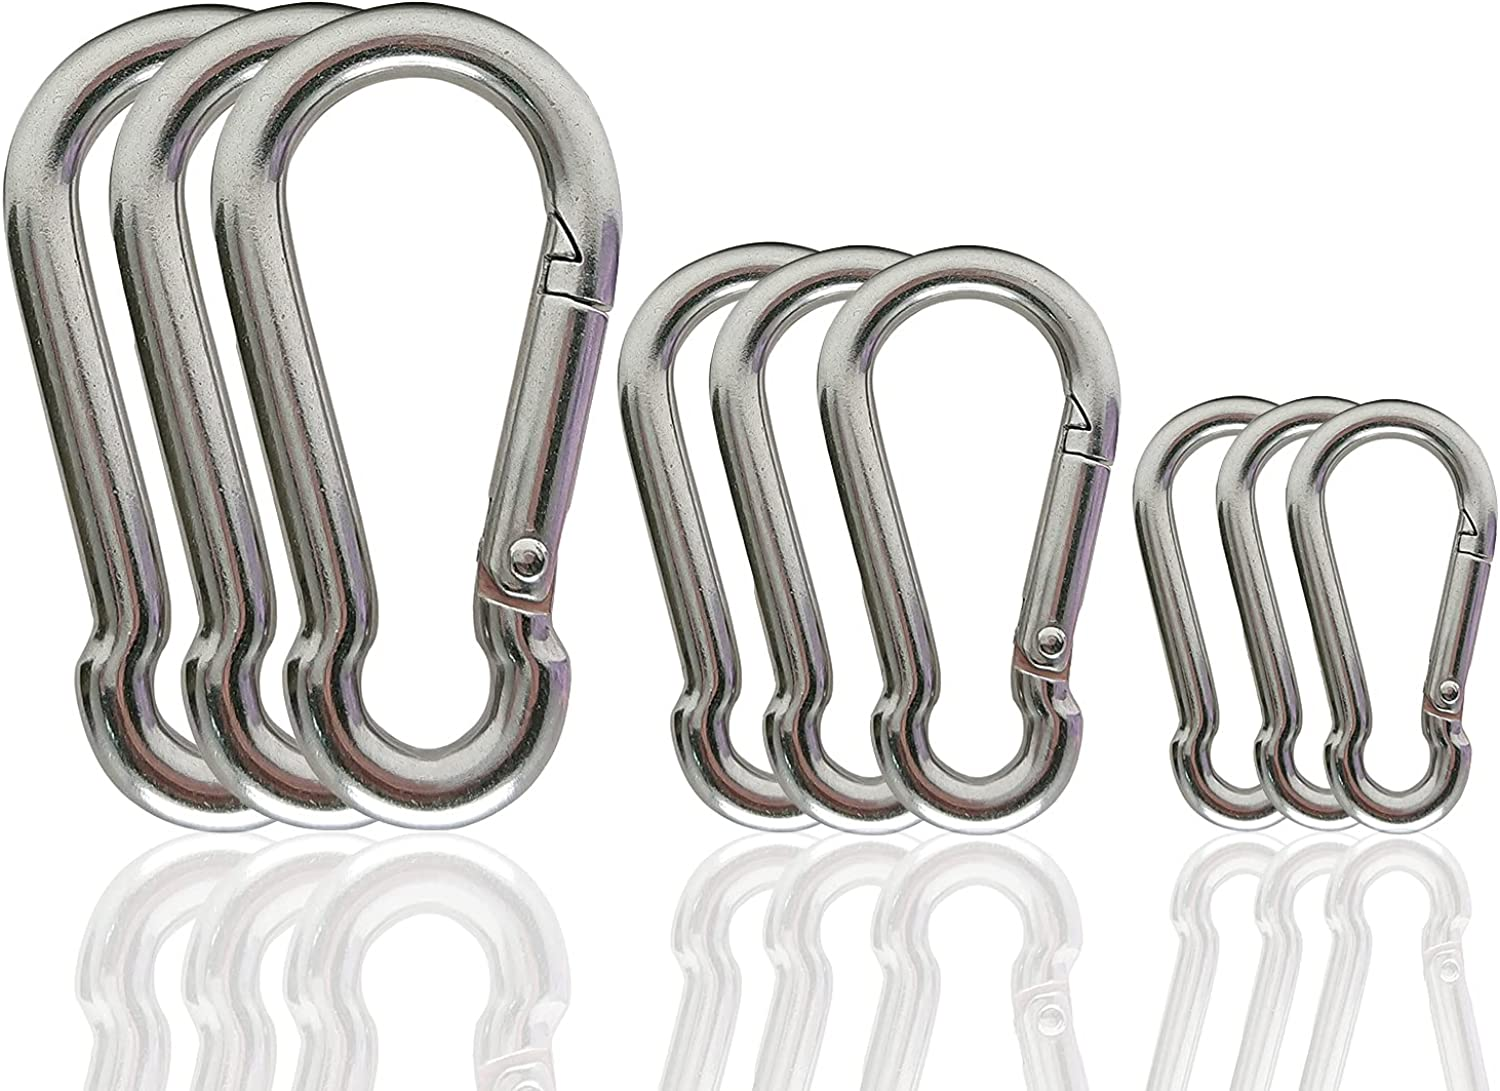 9 Pcs Spring Challenge the lowest price Snap Hooks Carabiner 3.15 inch Minneapolis Mall 2.36 304 2 Stai